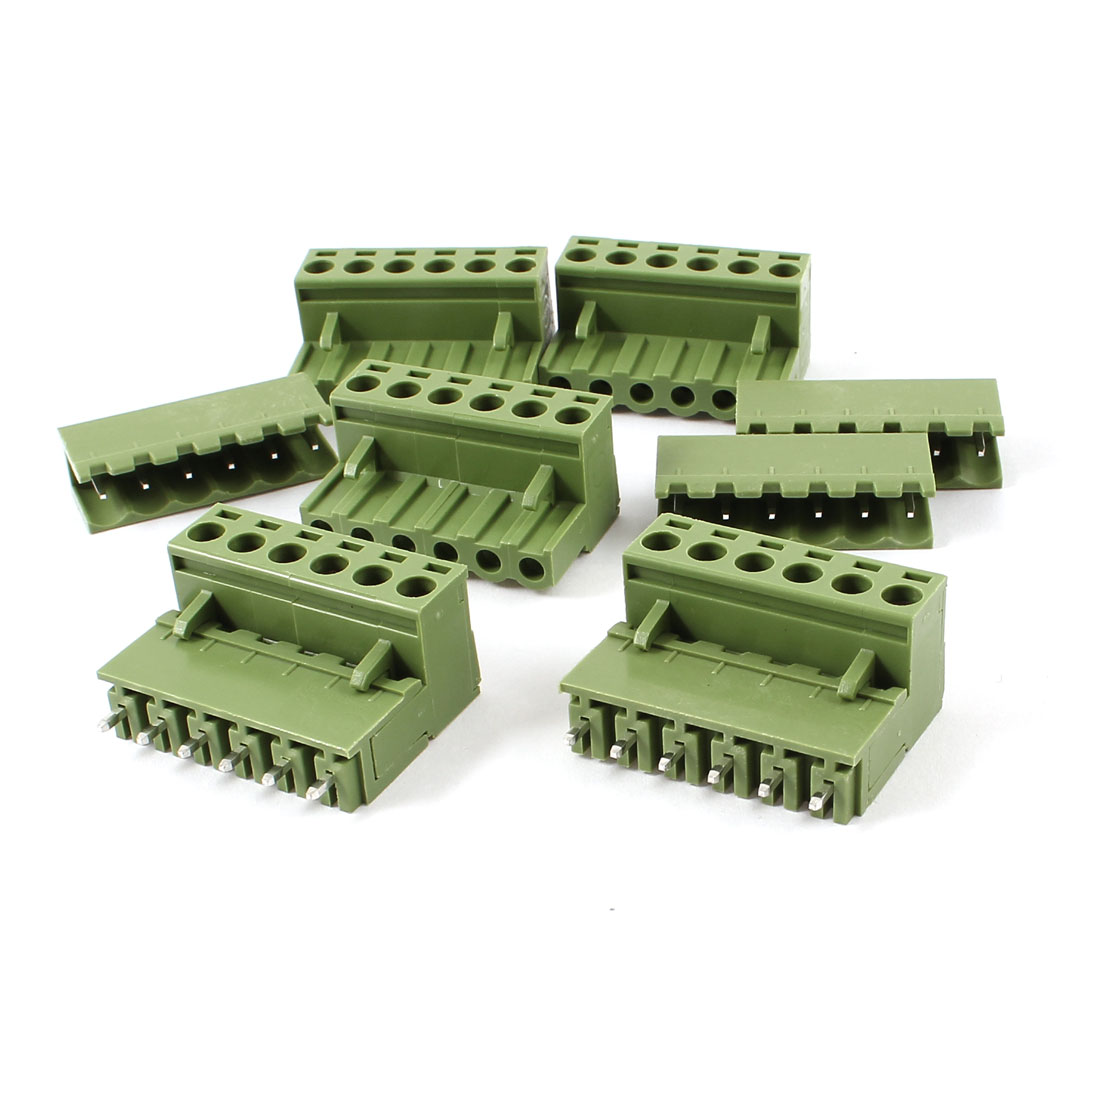 5 Set Single Row 6 Positions 5.08mm Straight Pluggable Terminal Block Green